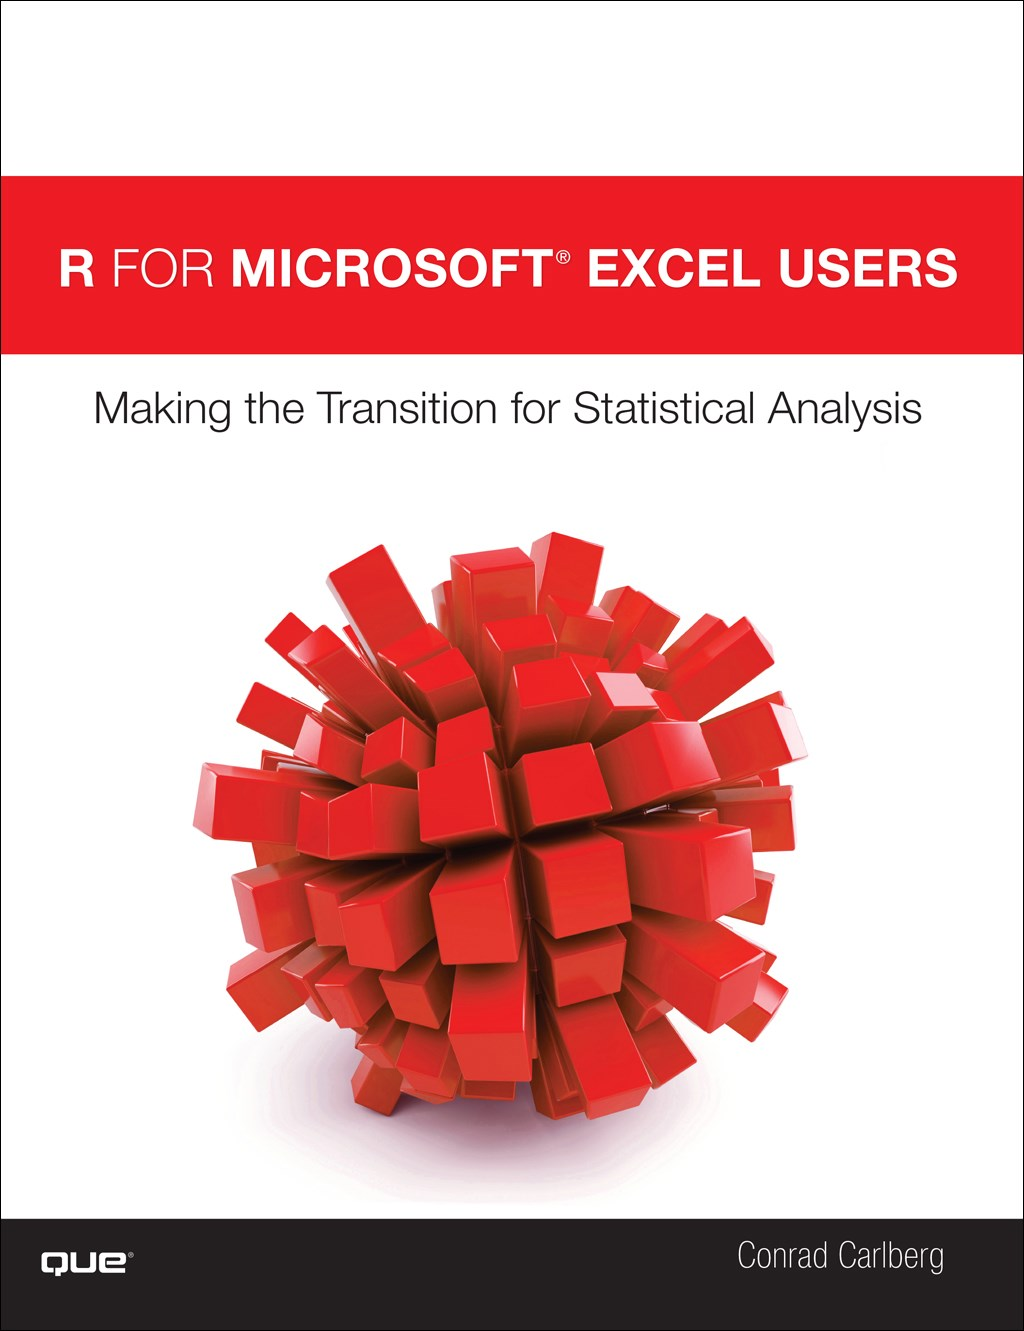 R for Microsoft® Excel Users: Making the Transition for Statistical Analysis